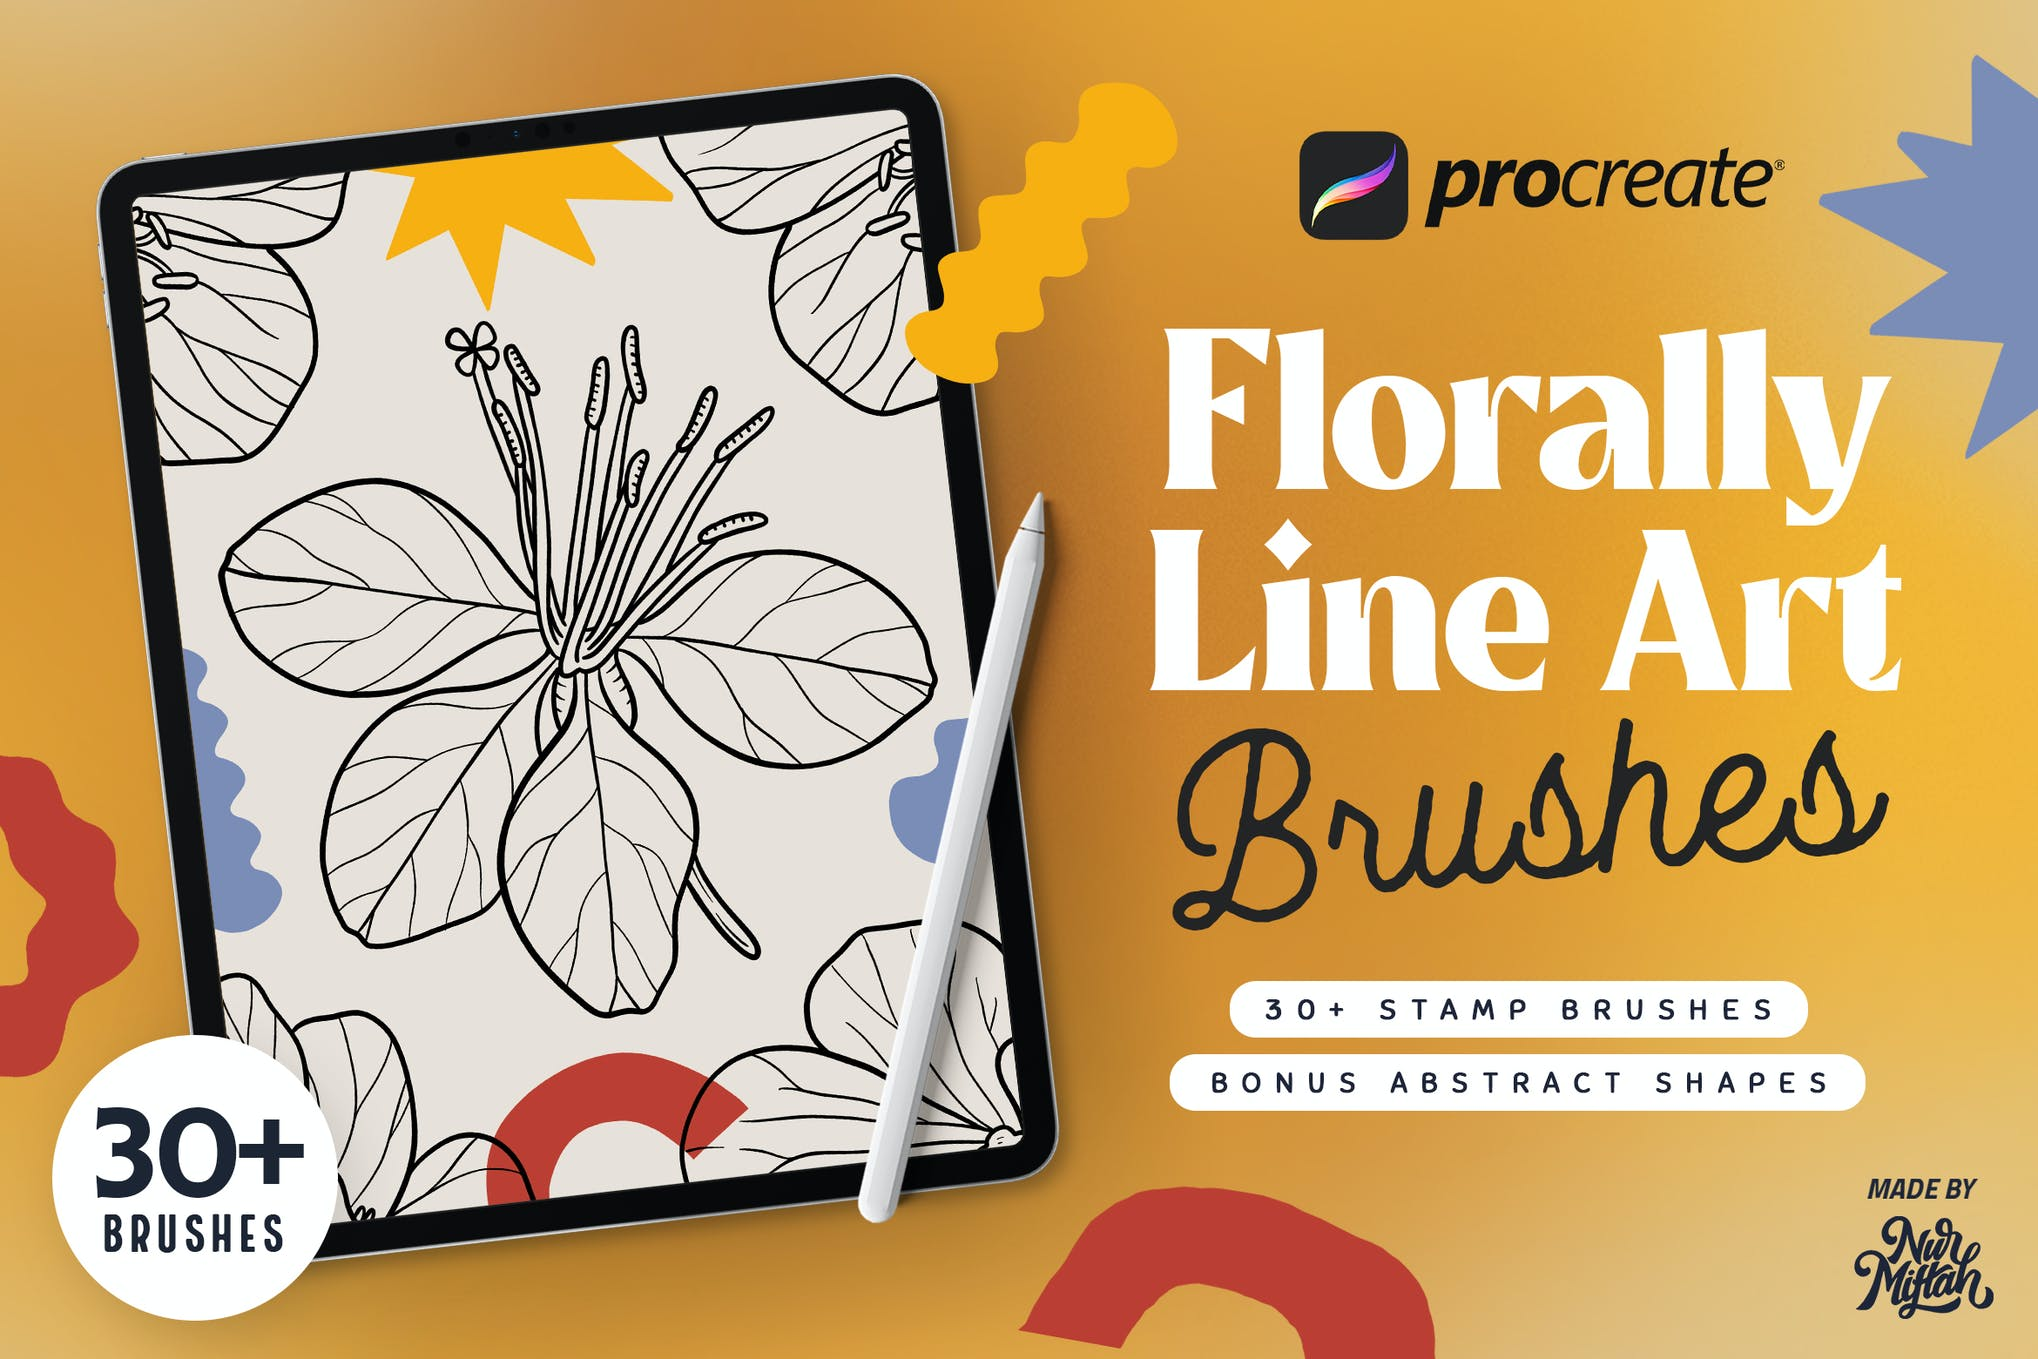 Procreate Florally Line Art Brushes